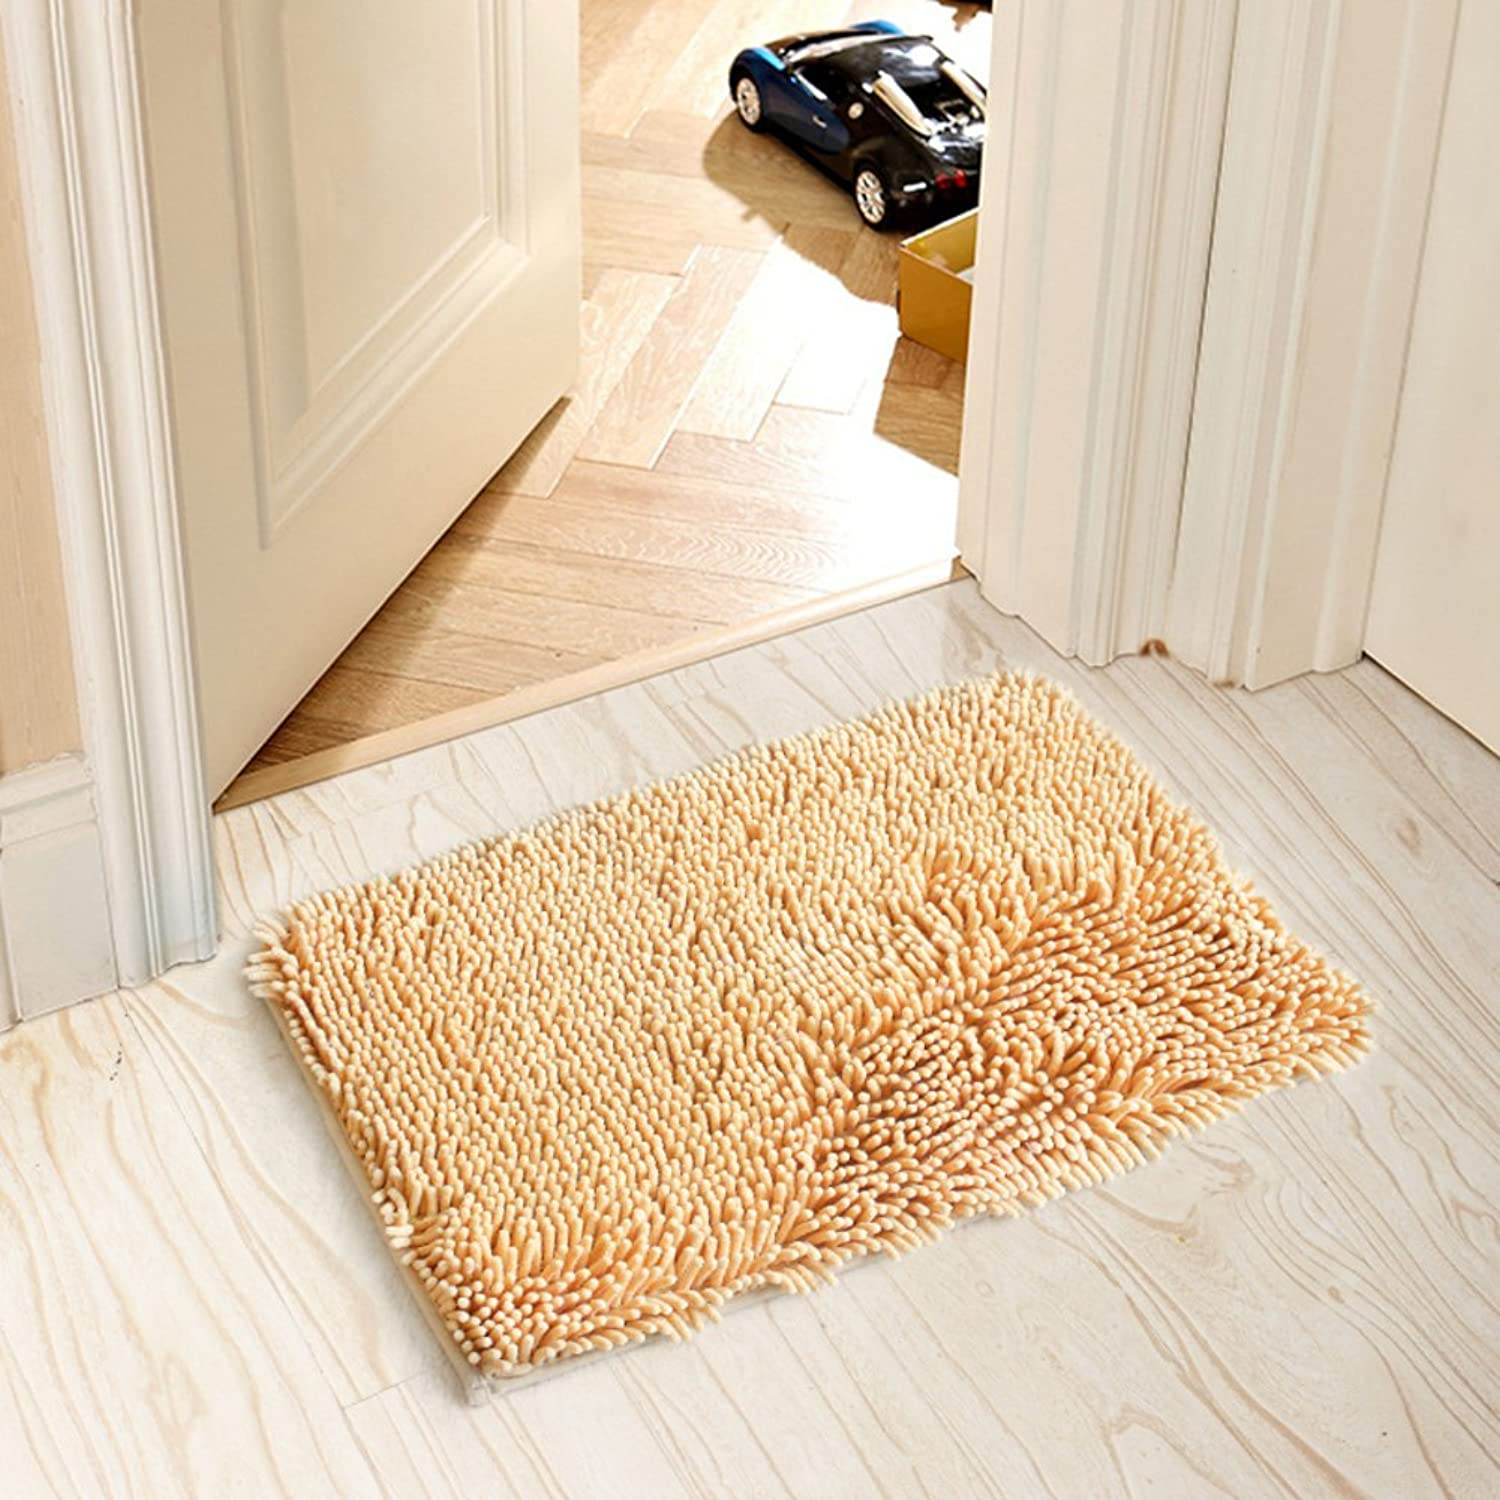 Doormat Chenille mat Indoor mats in The Hall Bedroom,The Door,Non-Slip mat [Bathroom],Kitchen,Water-Absorbing mats Door mats-K 70x200cm(28x79inch)